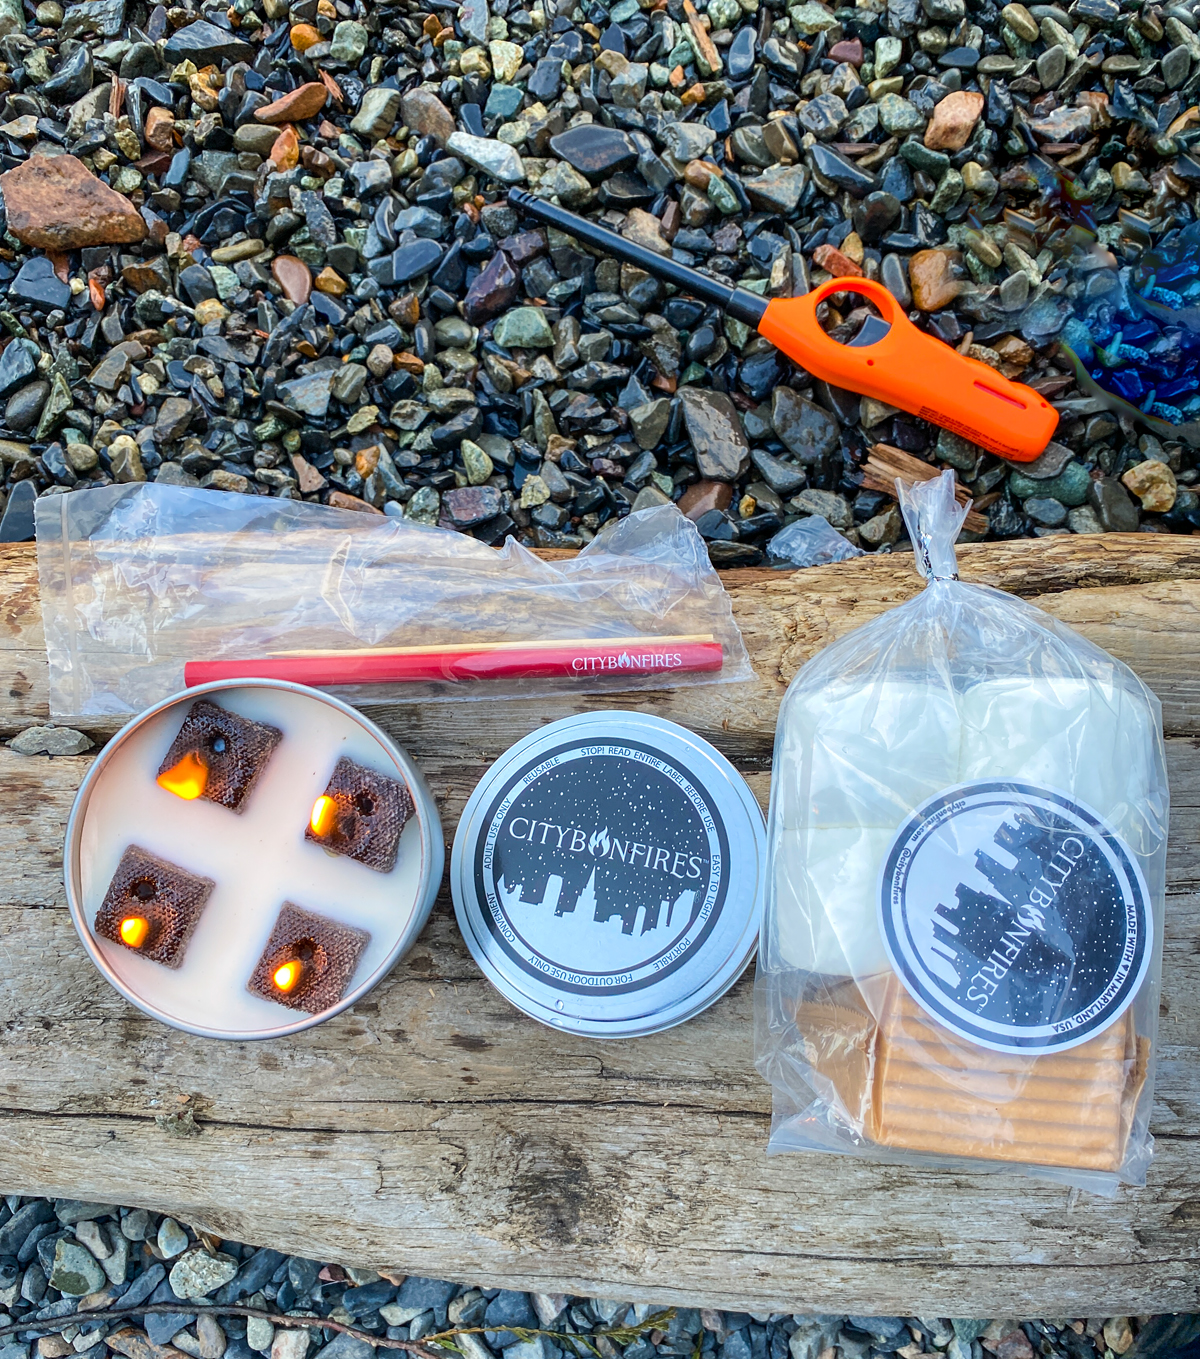 city bonfires with smores kit